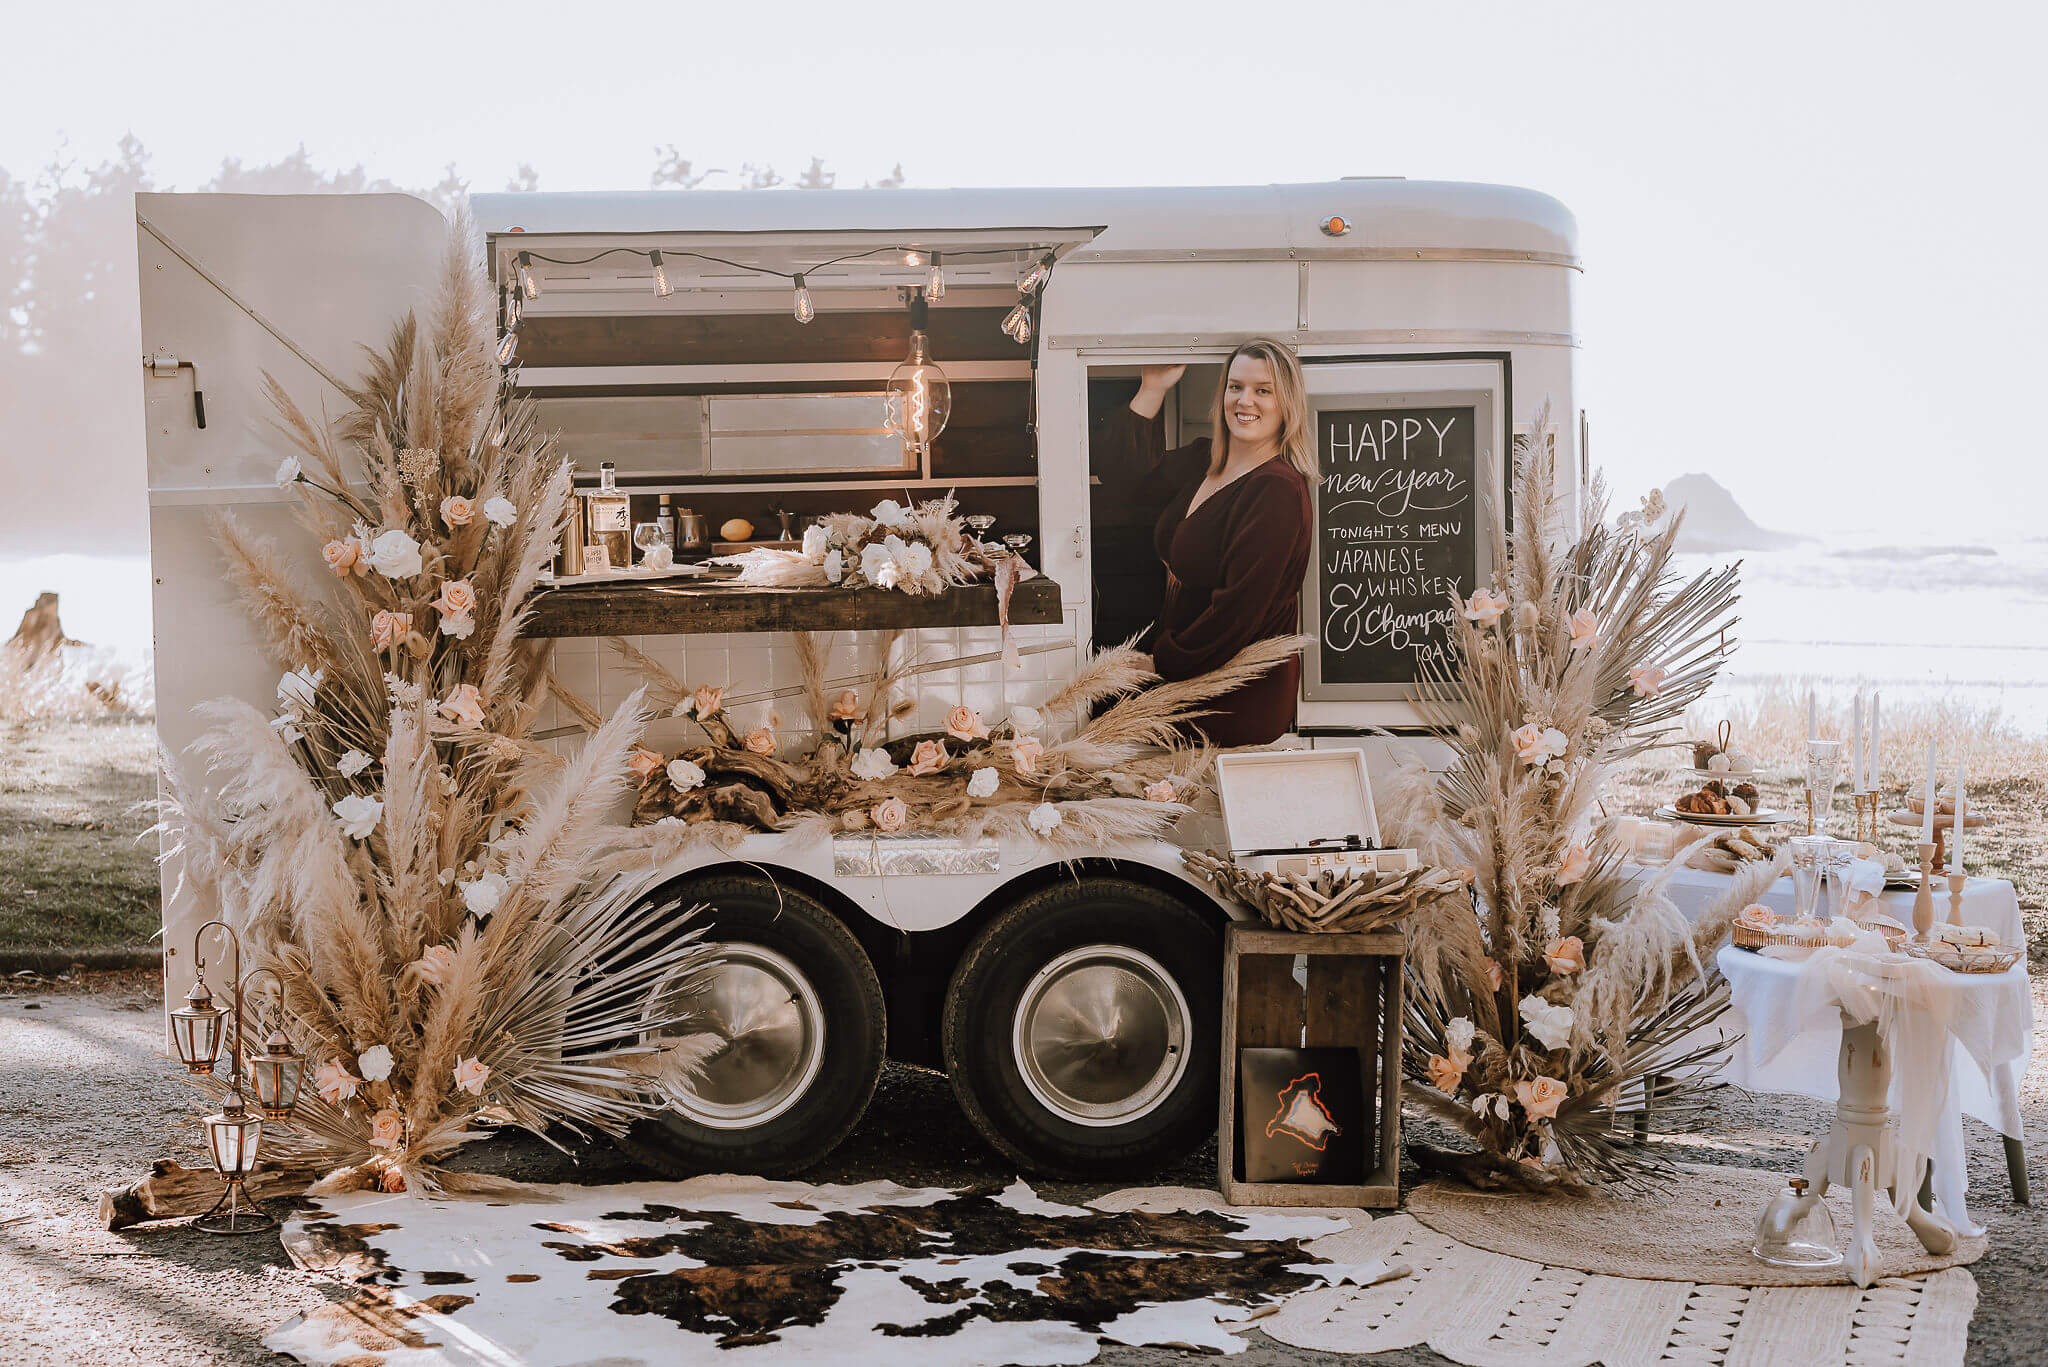 The Tipsy Willow mobile bartending trailer and its owner Natalie